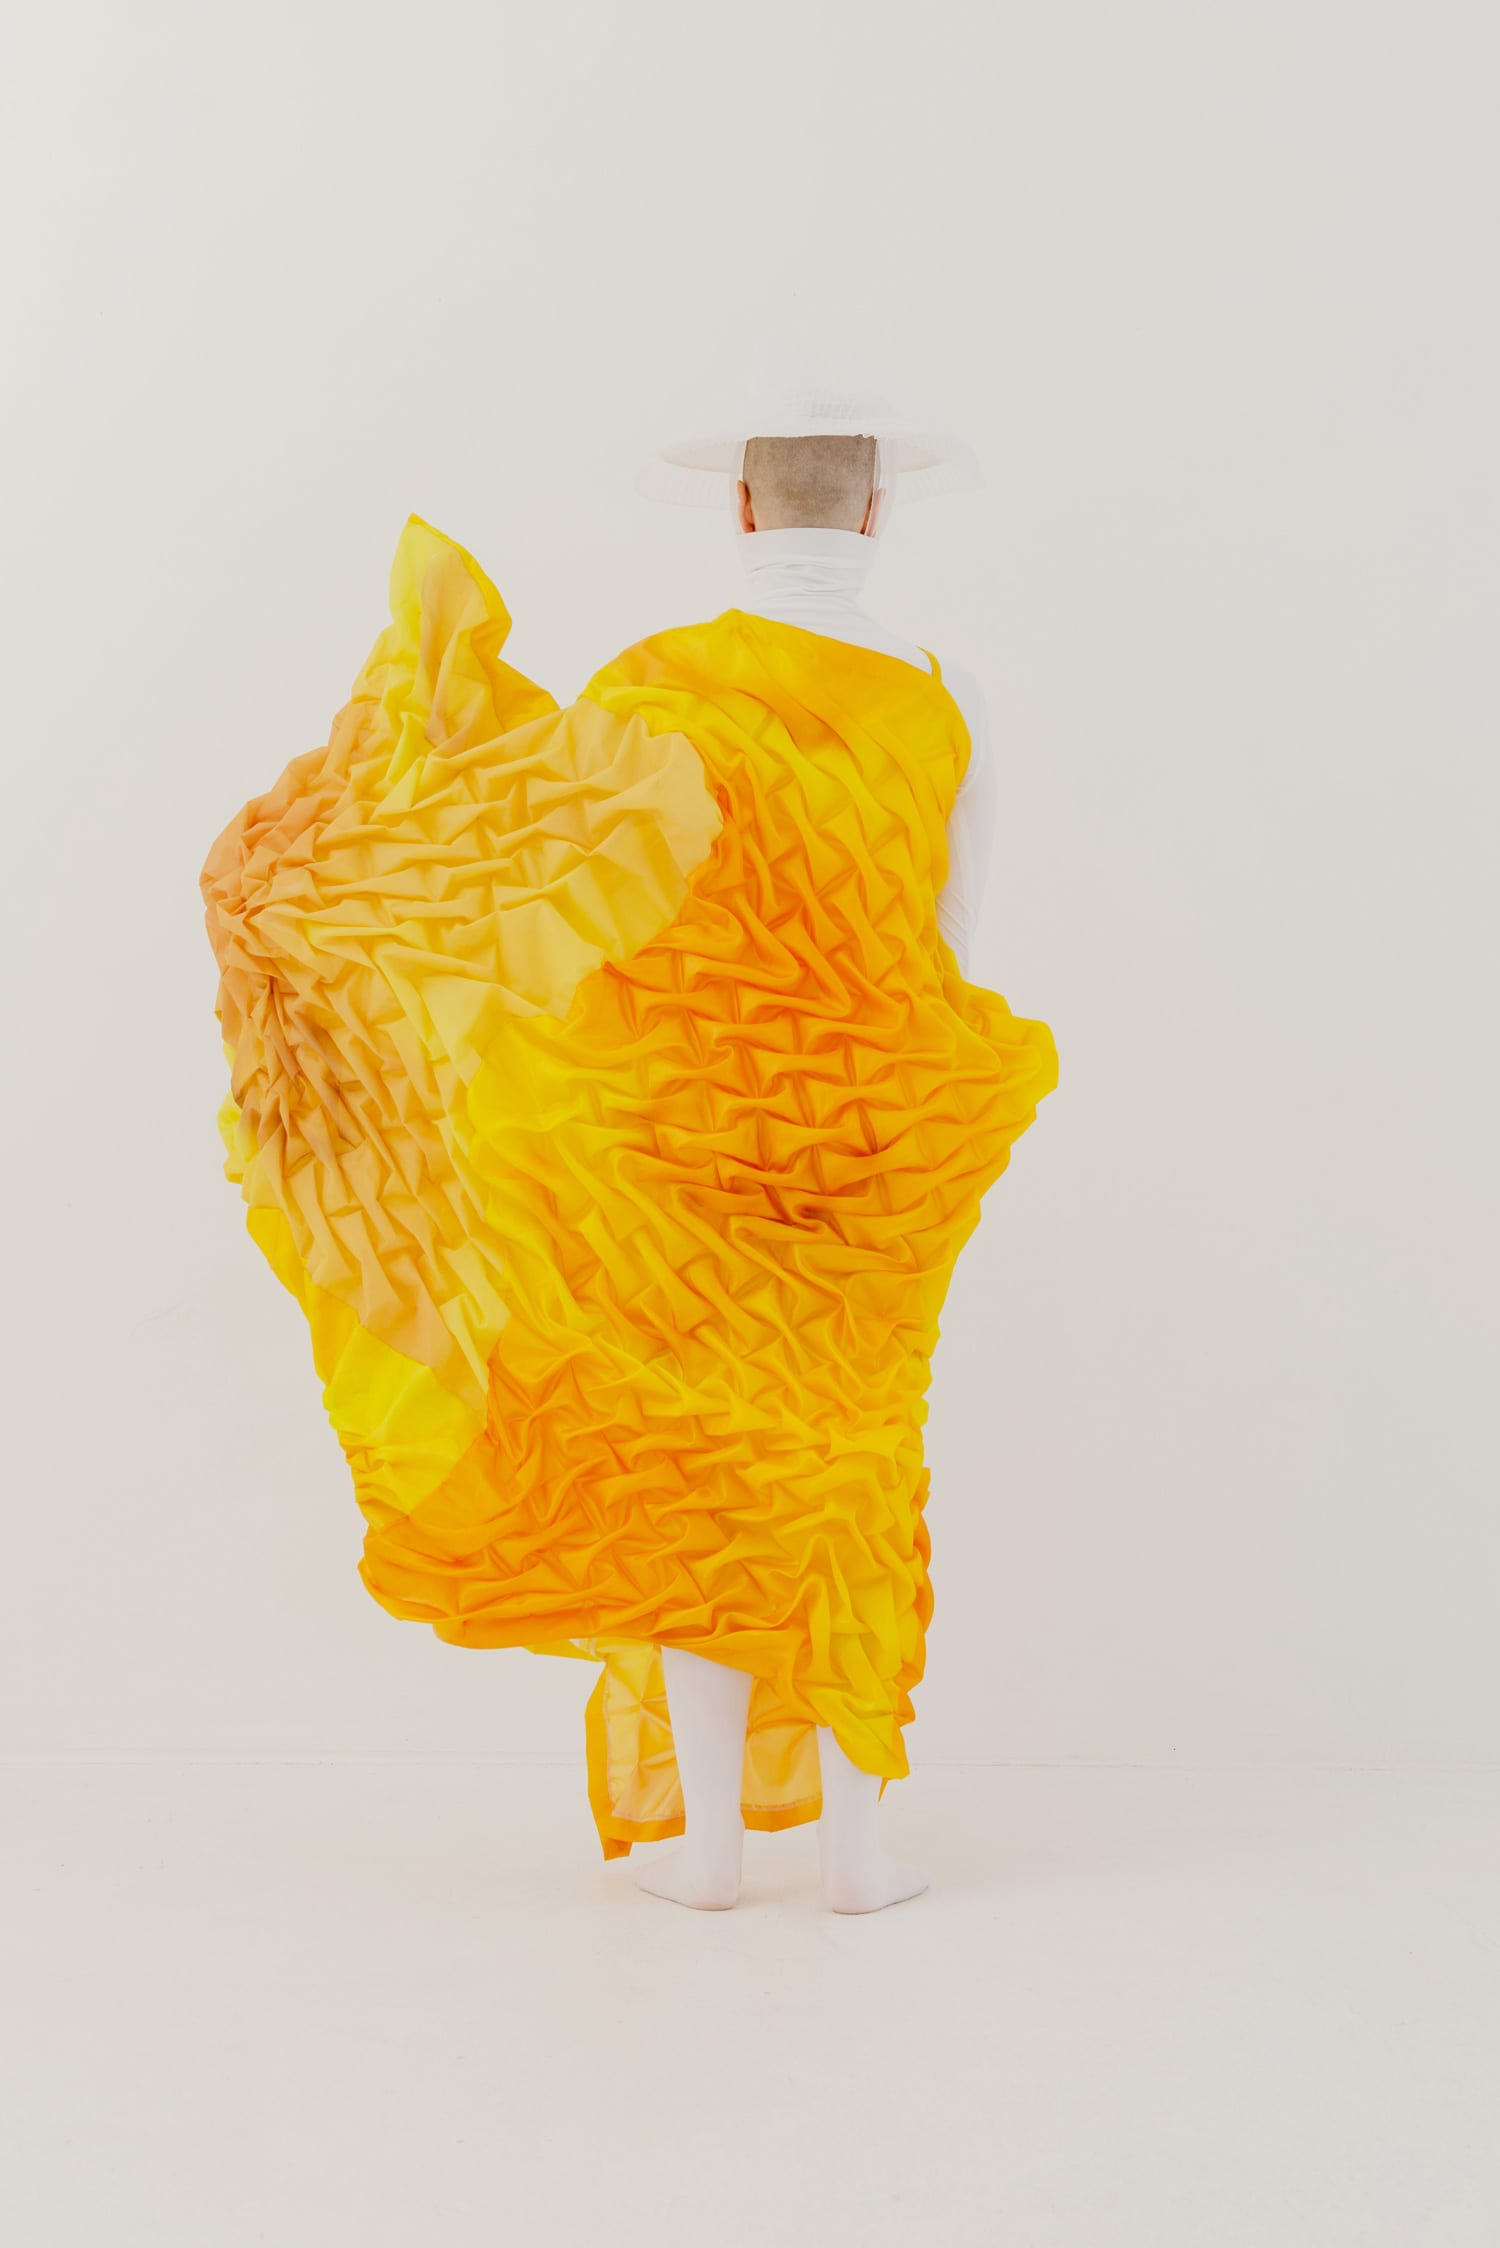 After-Print by Betty Liu | Yellowtrace